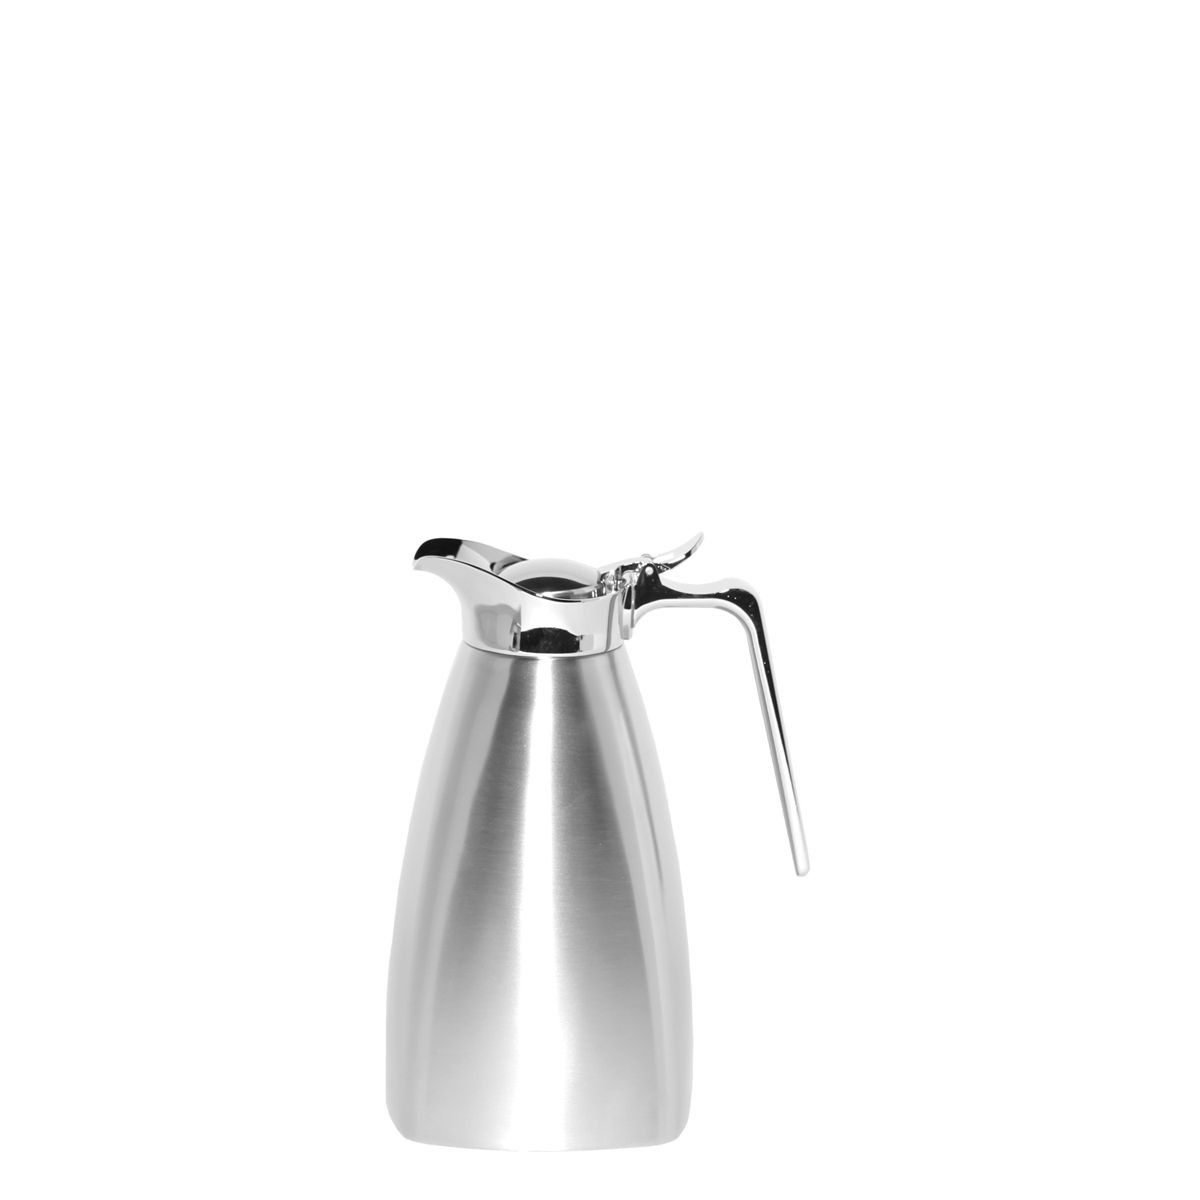 Service Ideas SVSQ07BS Brushed Steel Square Carafe, 0.7 Liter